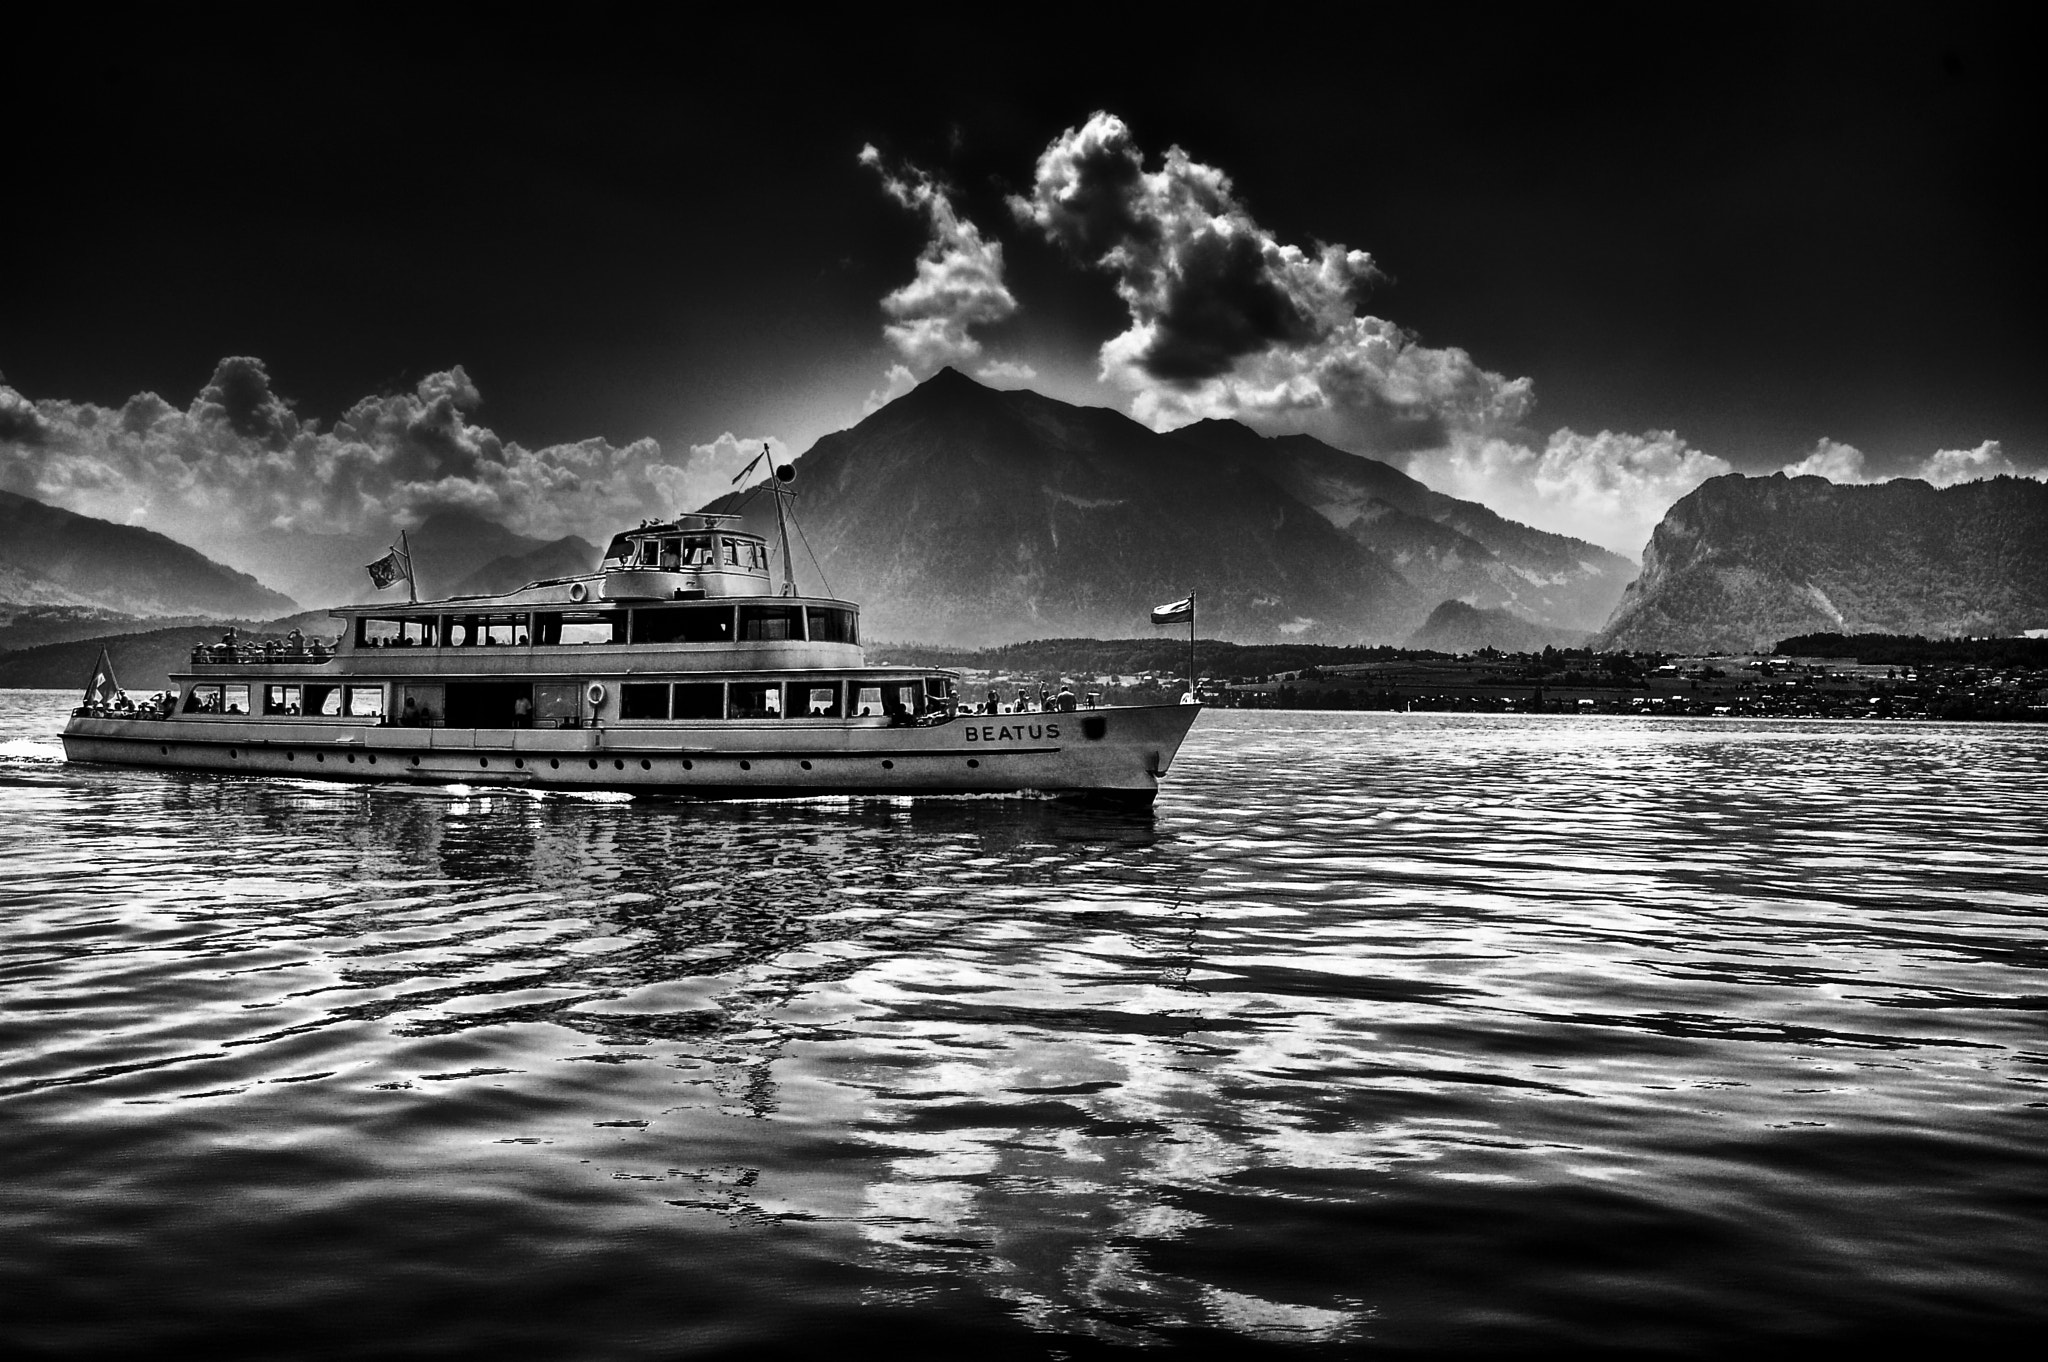 Photograph ~ On Black Water ~ by David O Sullivan on 500px